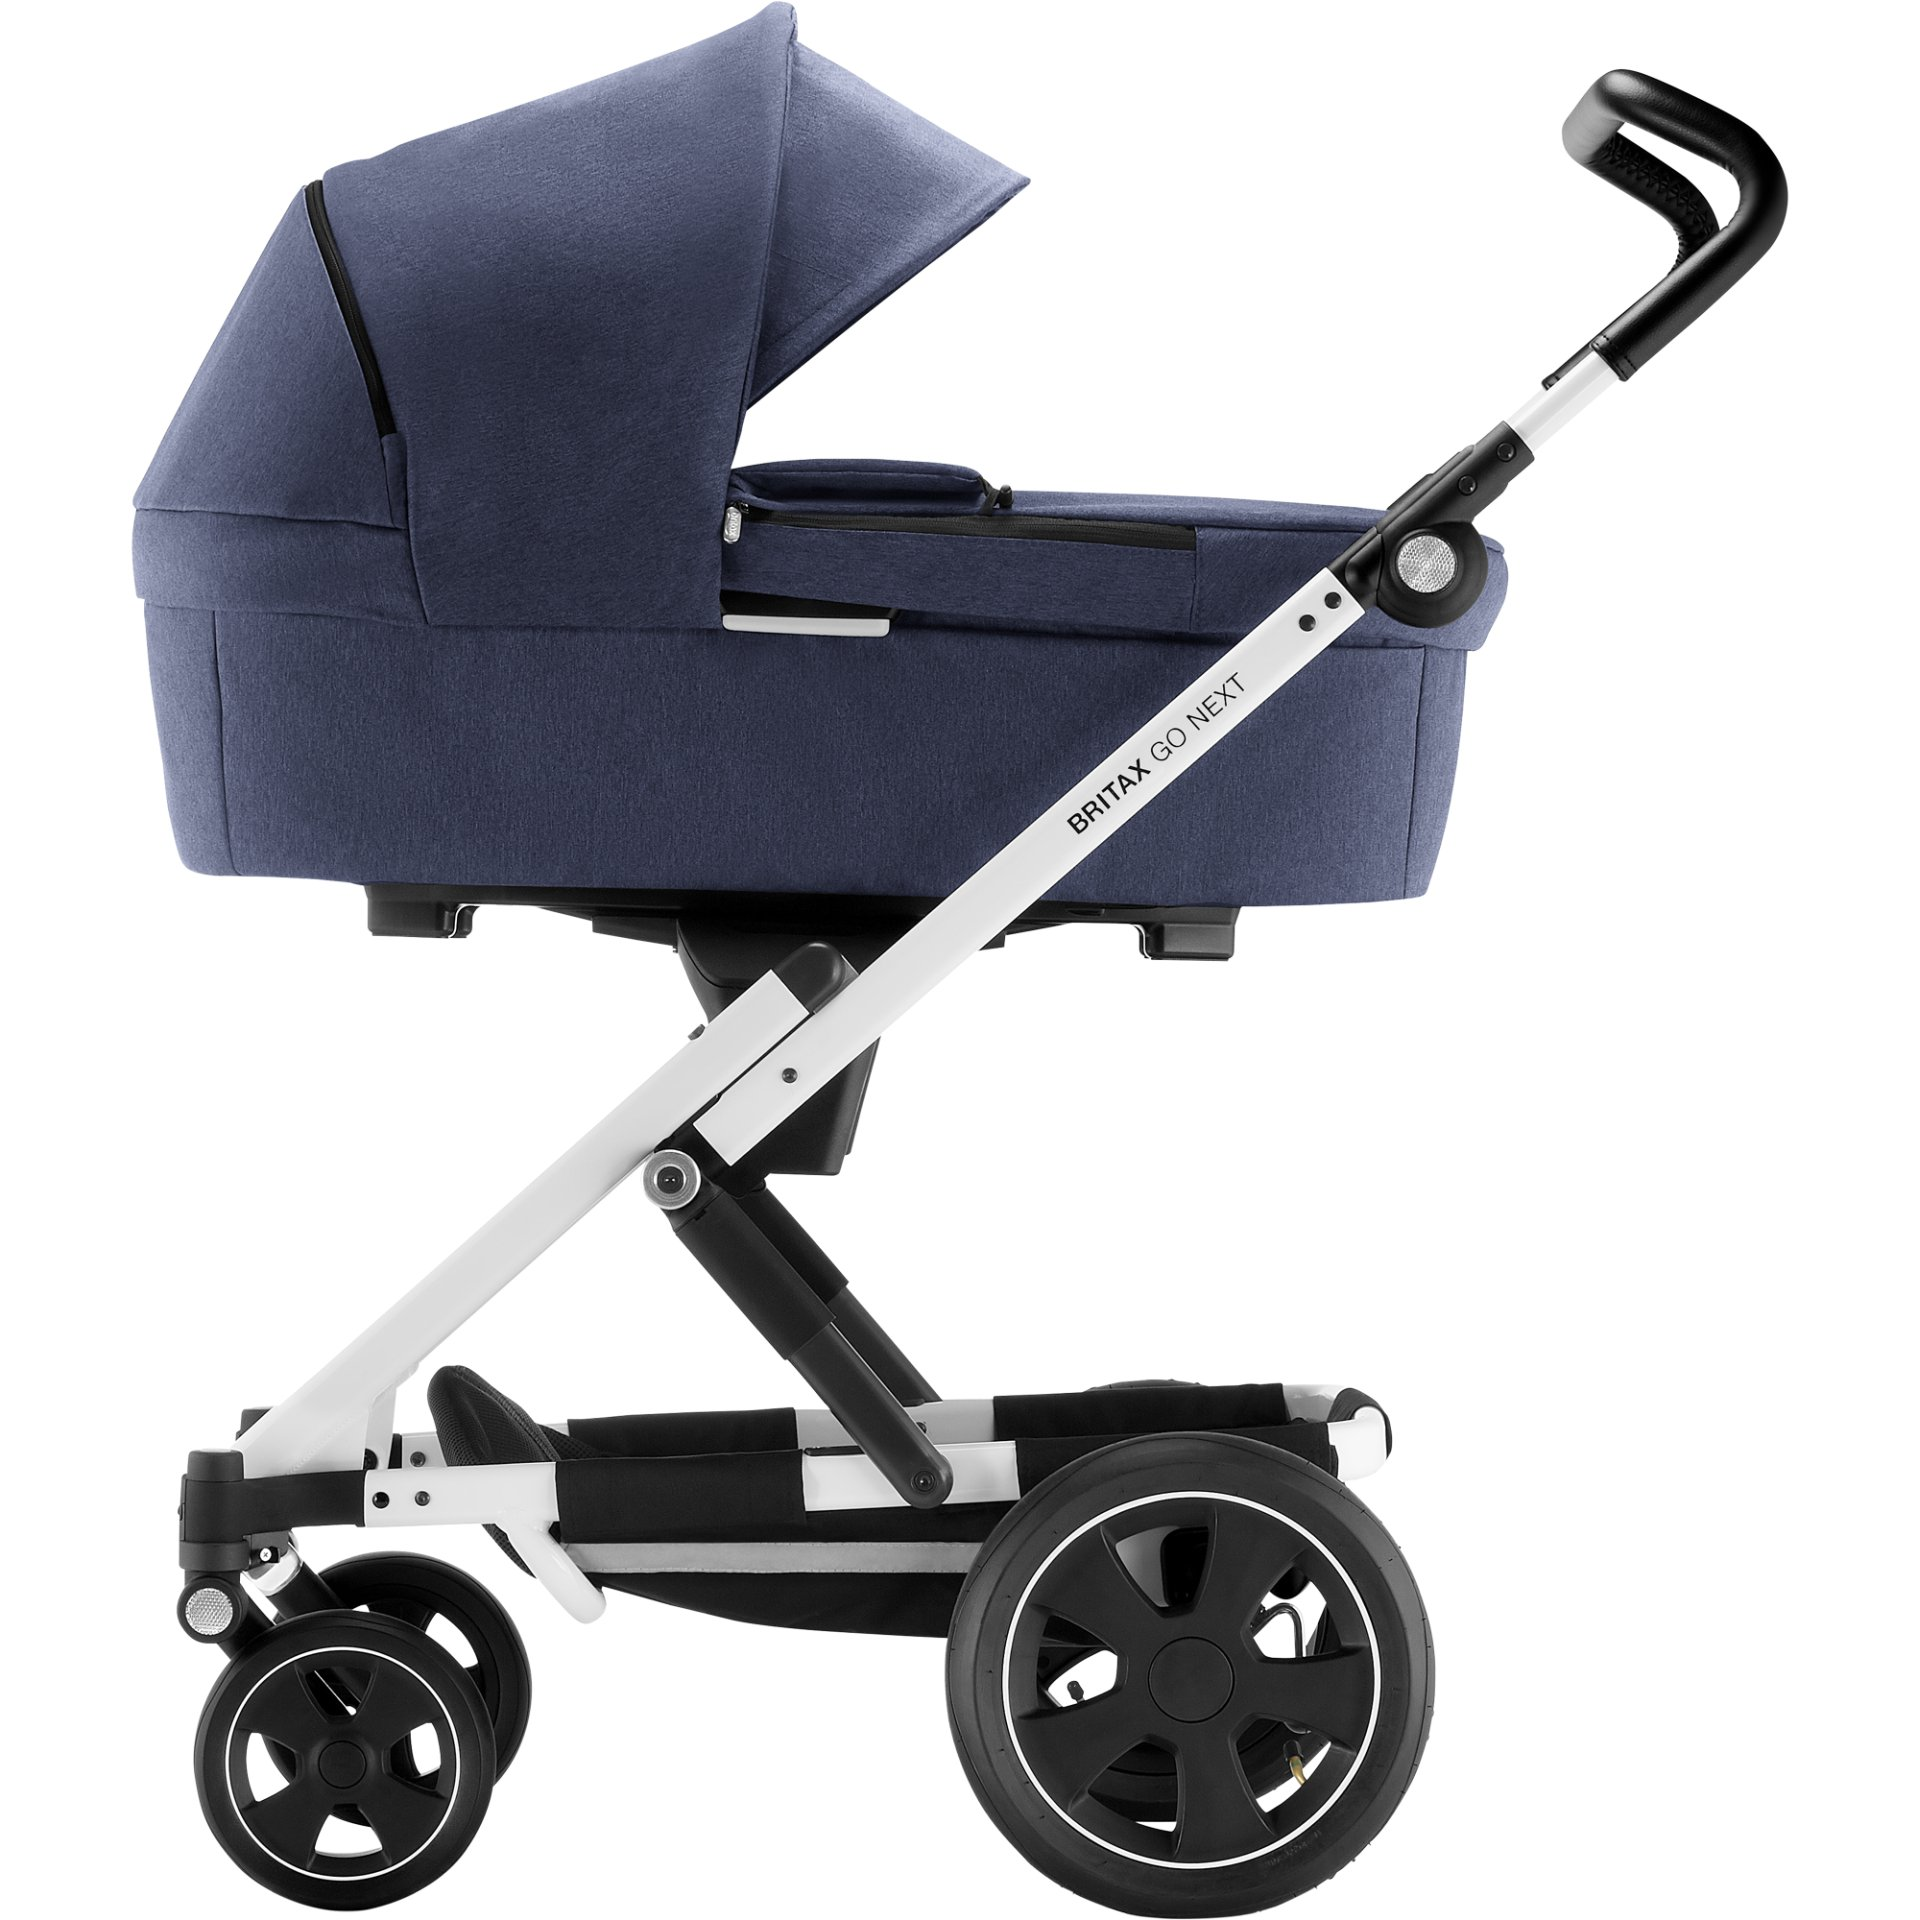 britax r mer stroller go next 2 2018 navy melange buy at kidsroom strollers. Black Bedroom Furniture Sets. Home Design Ideas